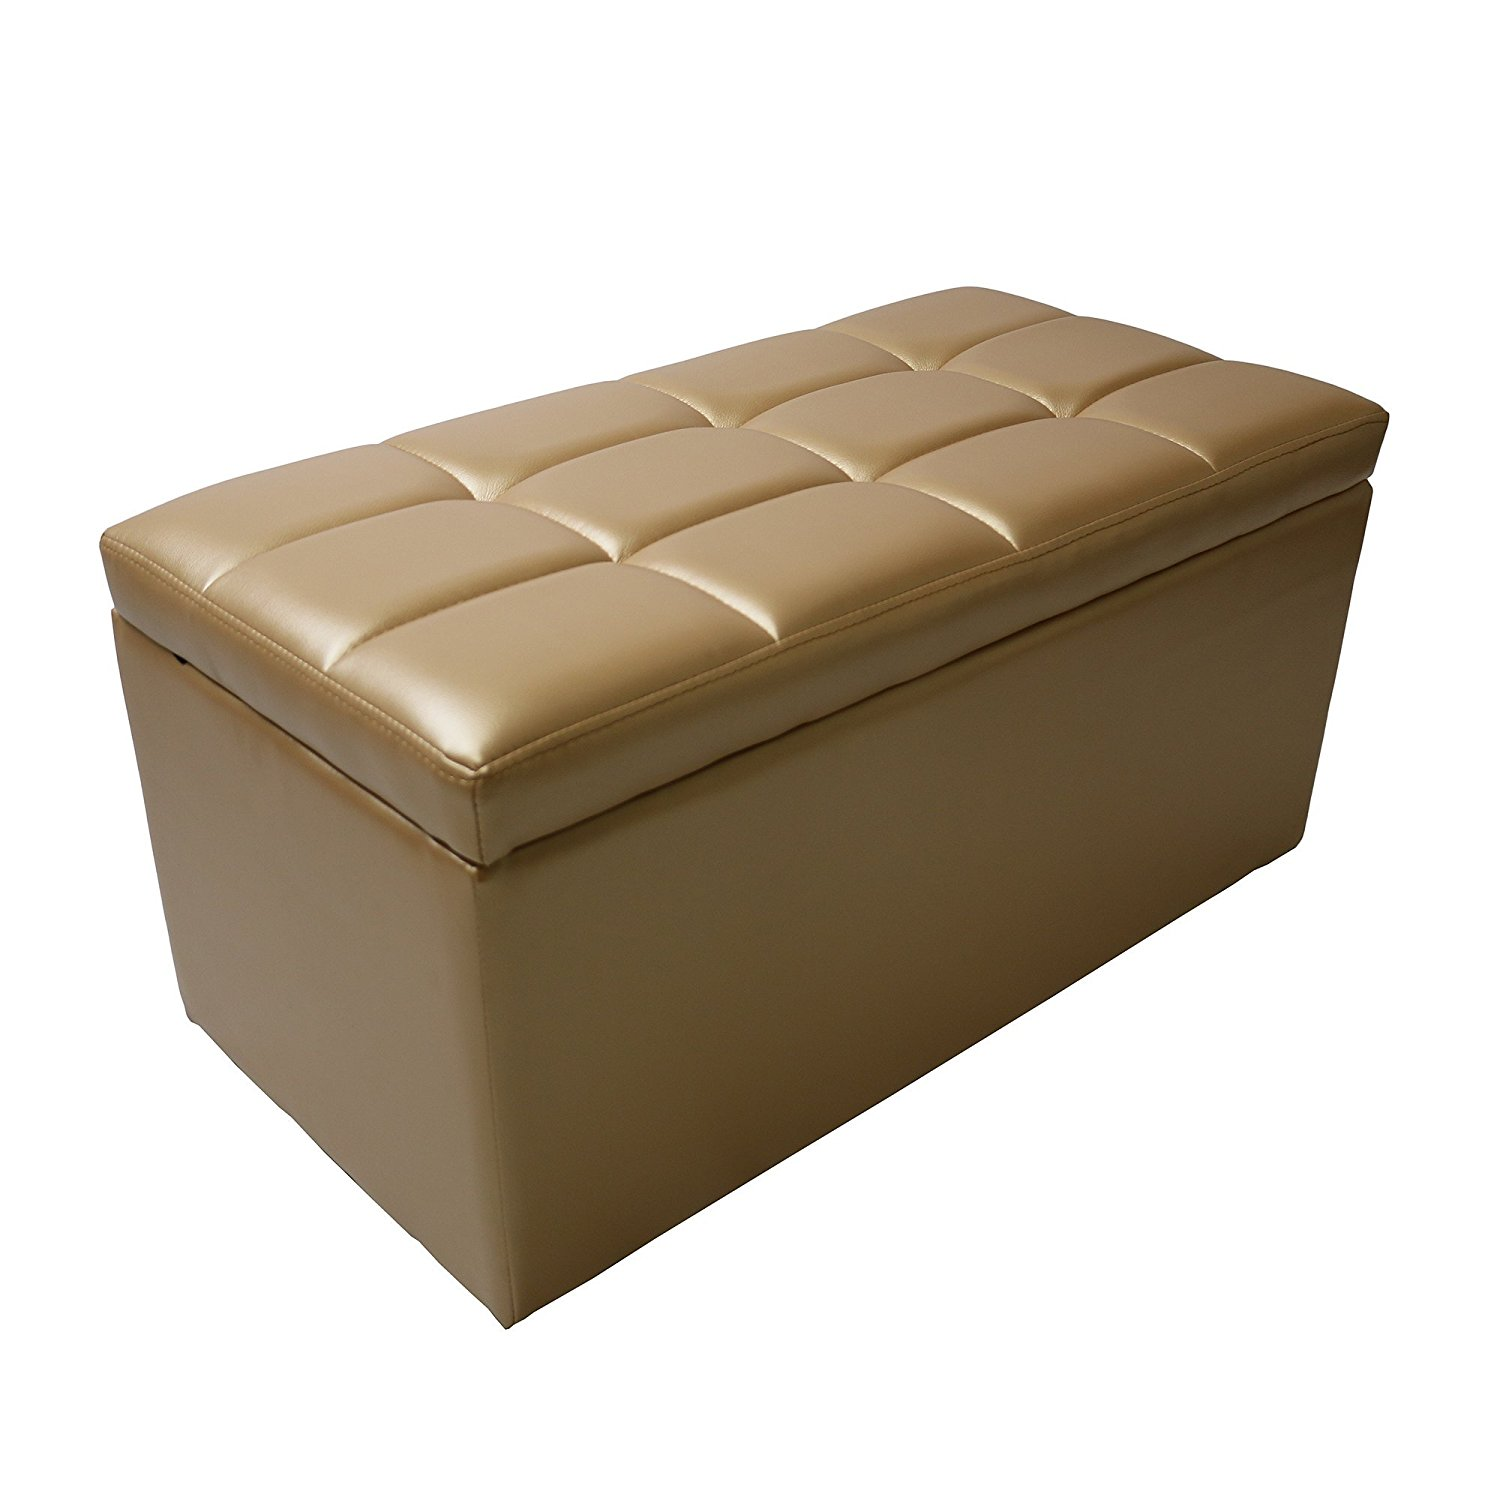 31'' Rectangle Unfold Leather hinged Storage Ottoman Bench Footstool Cocktail Seat Black